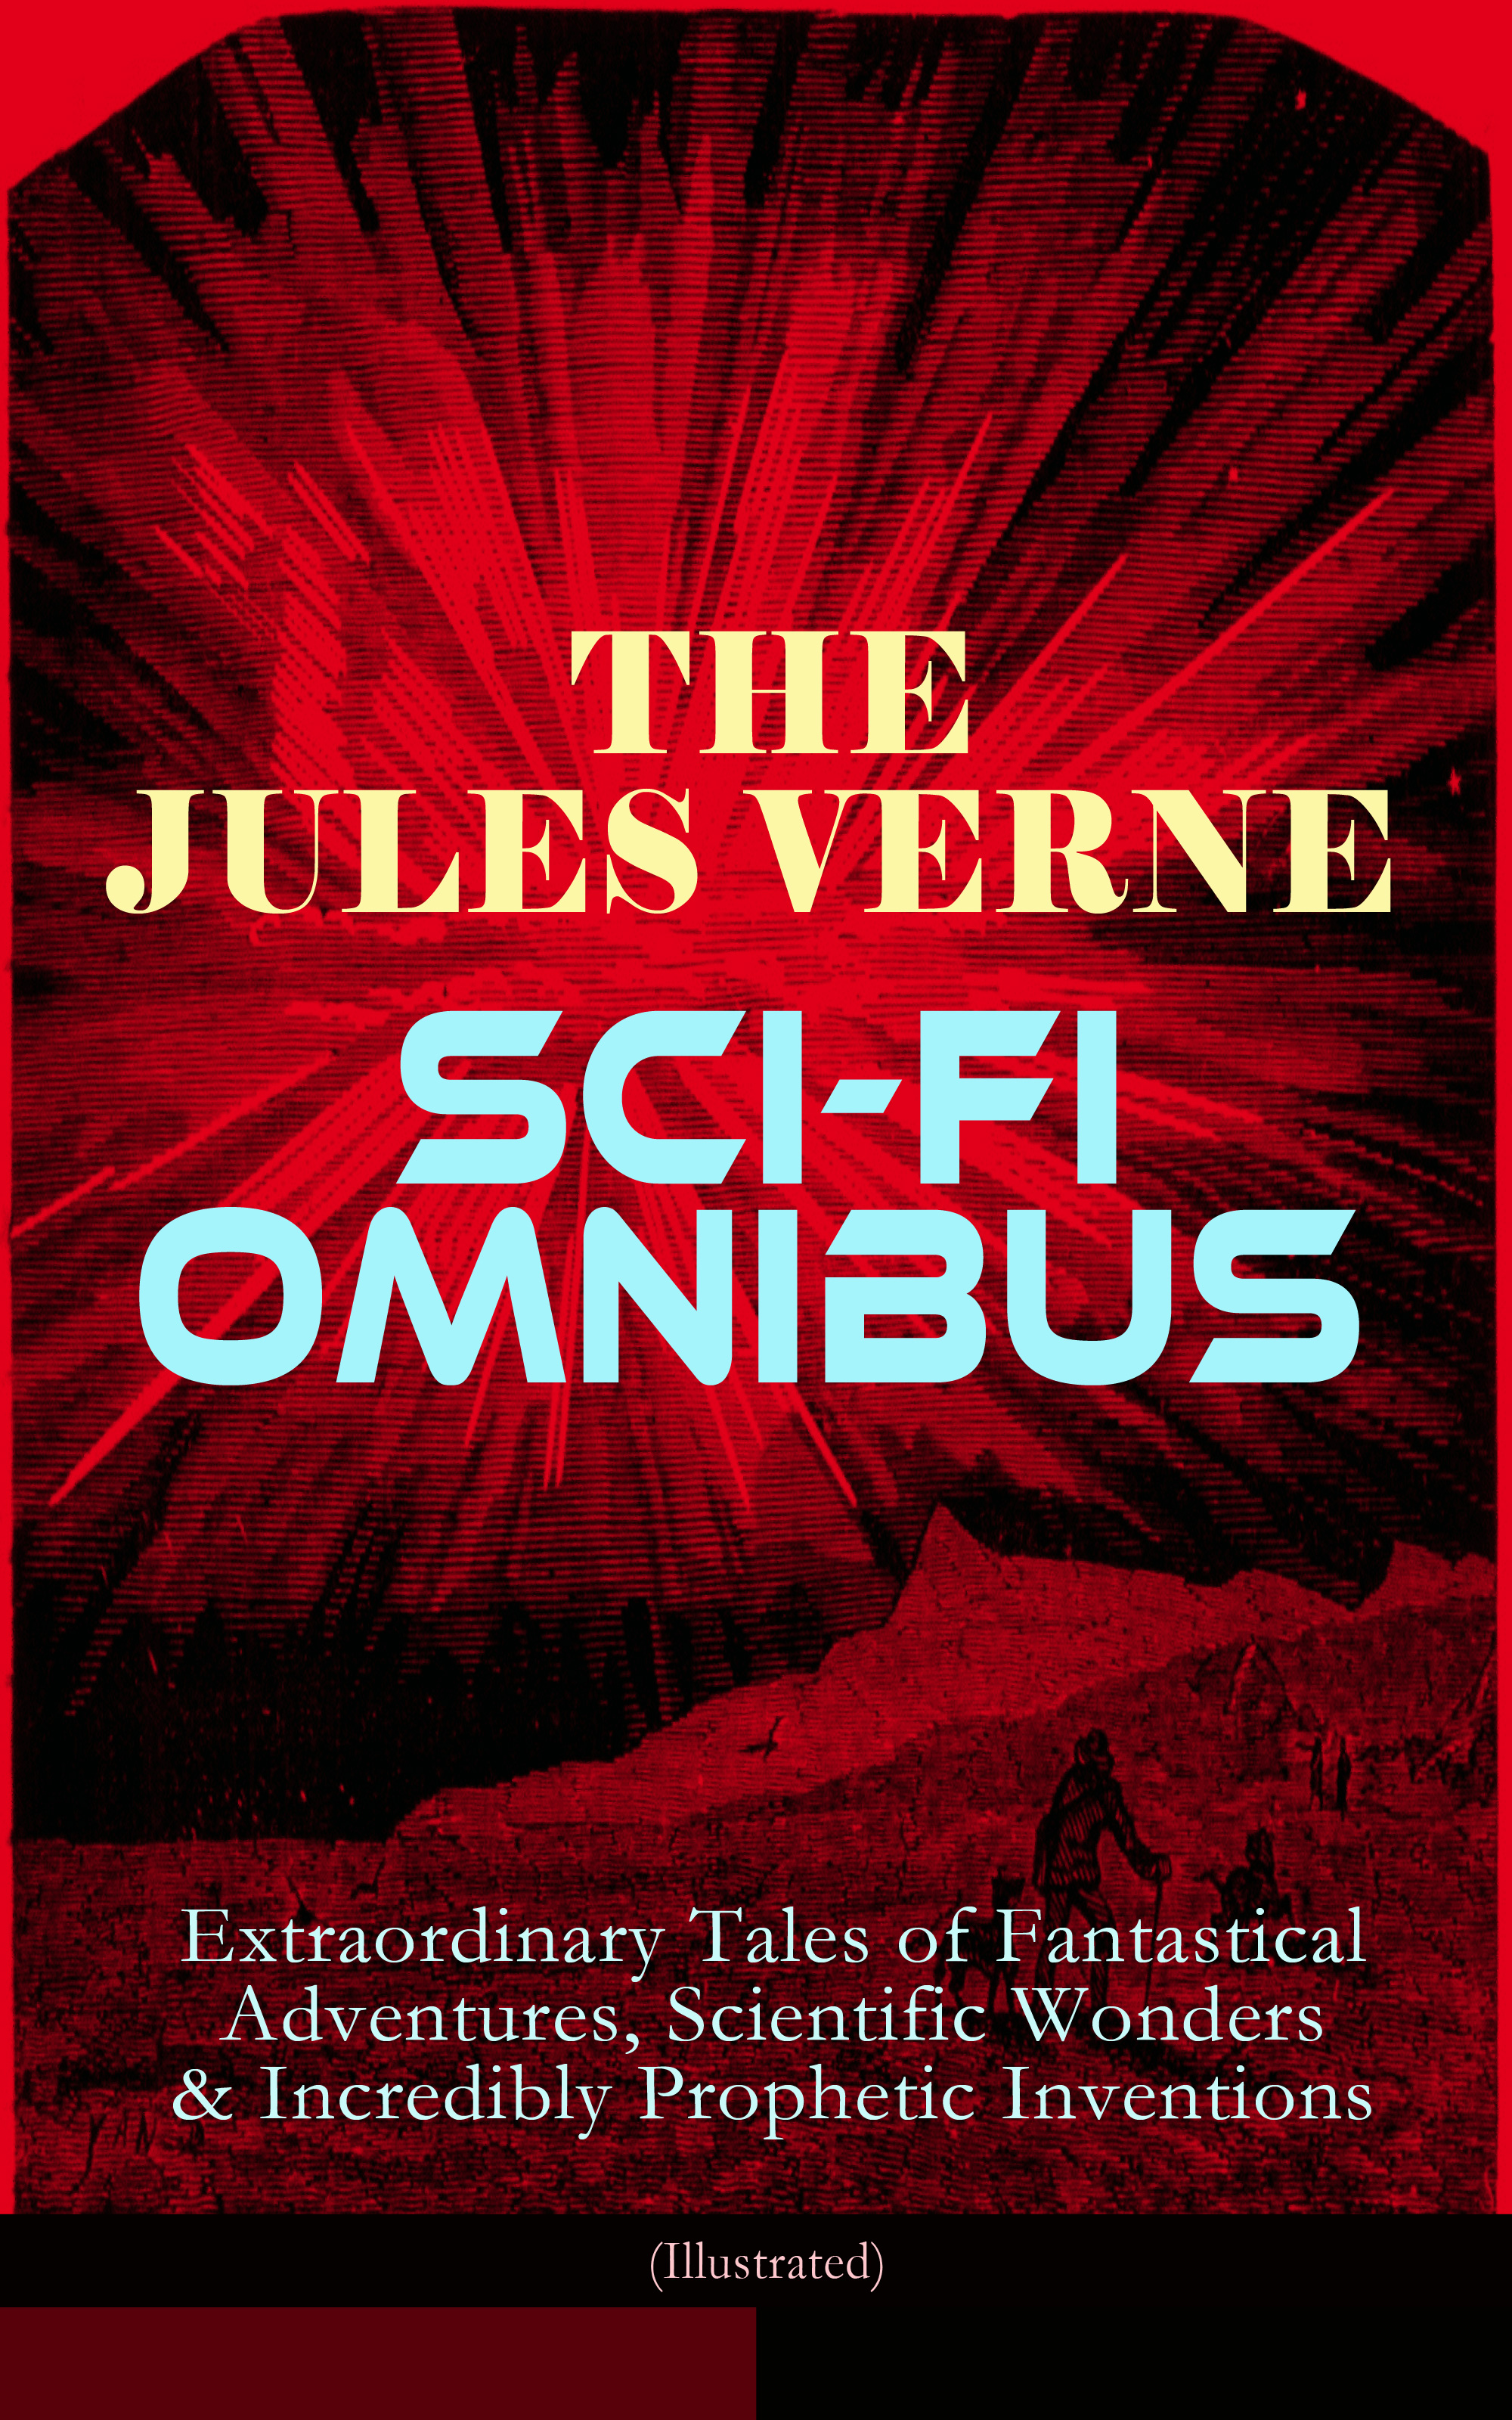 the jules verne sci fi omnibus extraordinary tales of fantastical adventures scientific wonders incredibly prophetic inventions illustrated